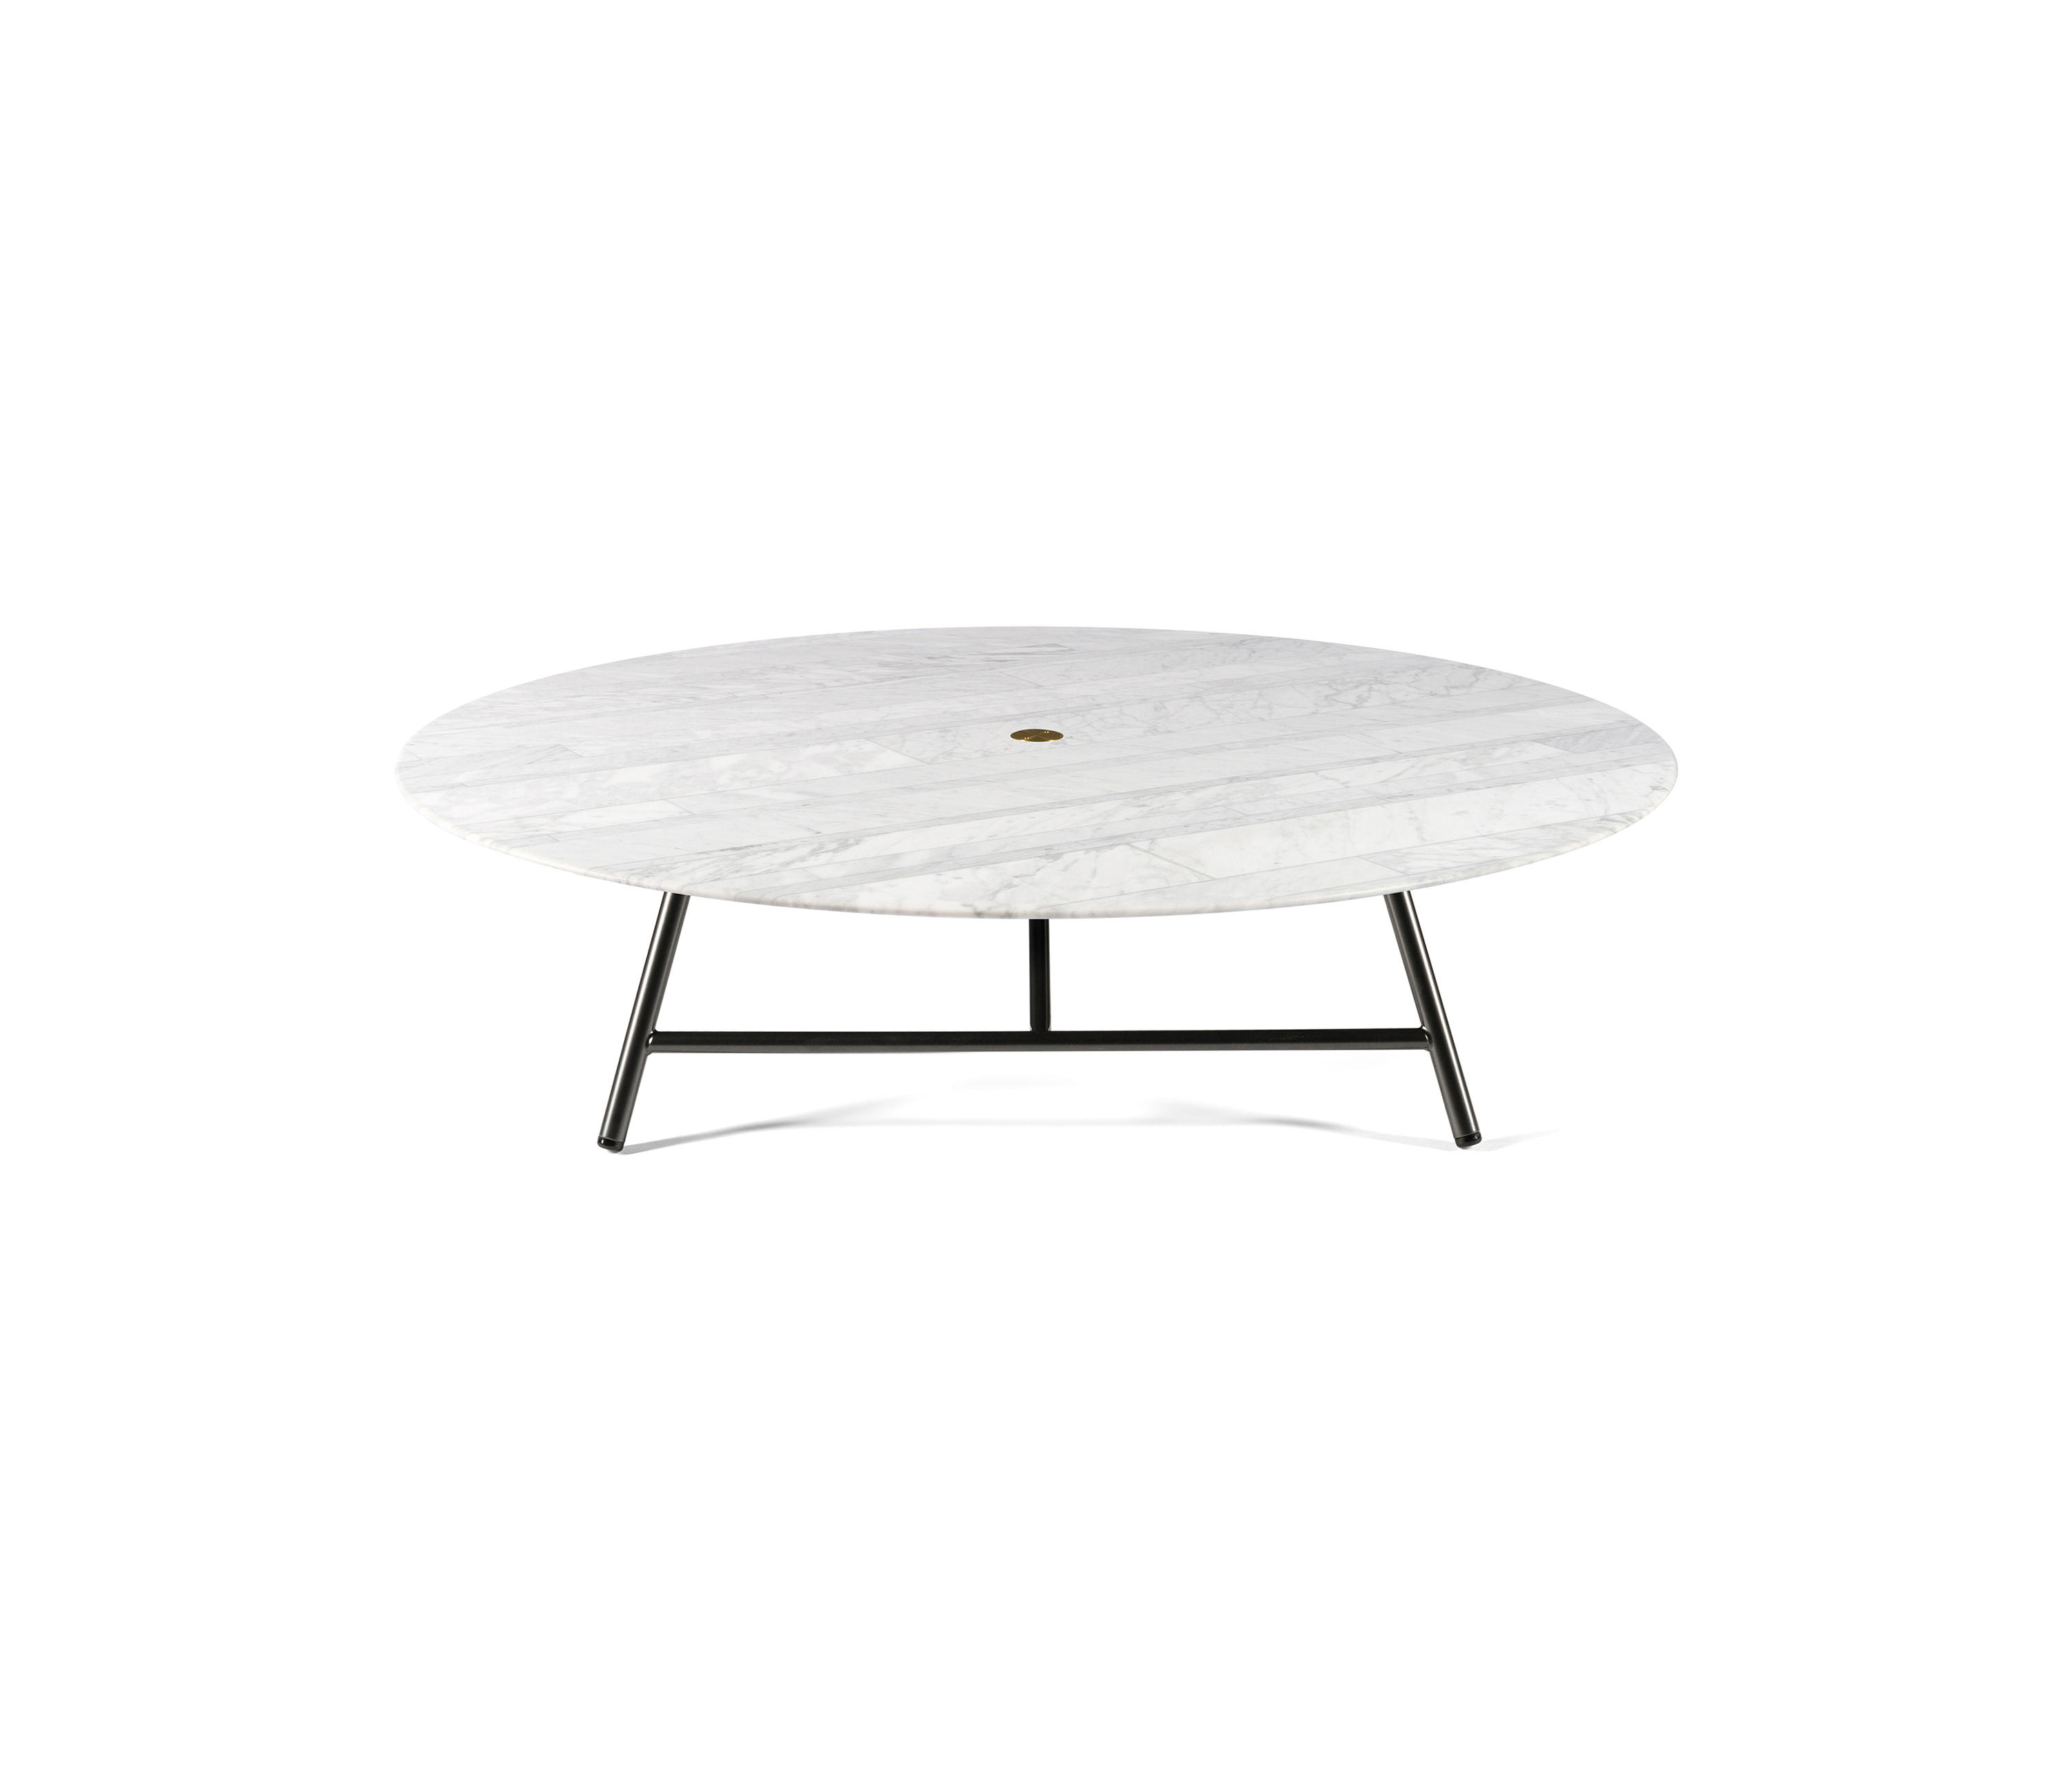 W COFFEE TABLE ˜90 CM 25 Lounge tables from Salvatori